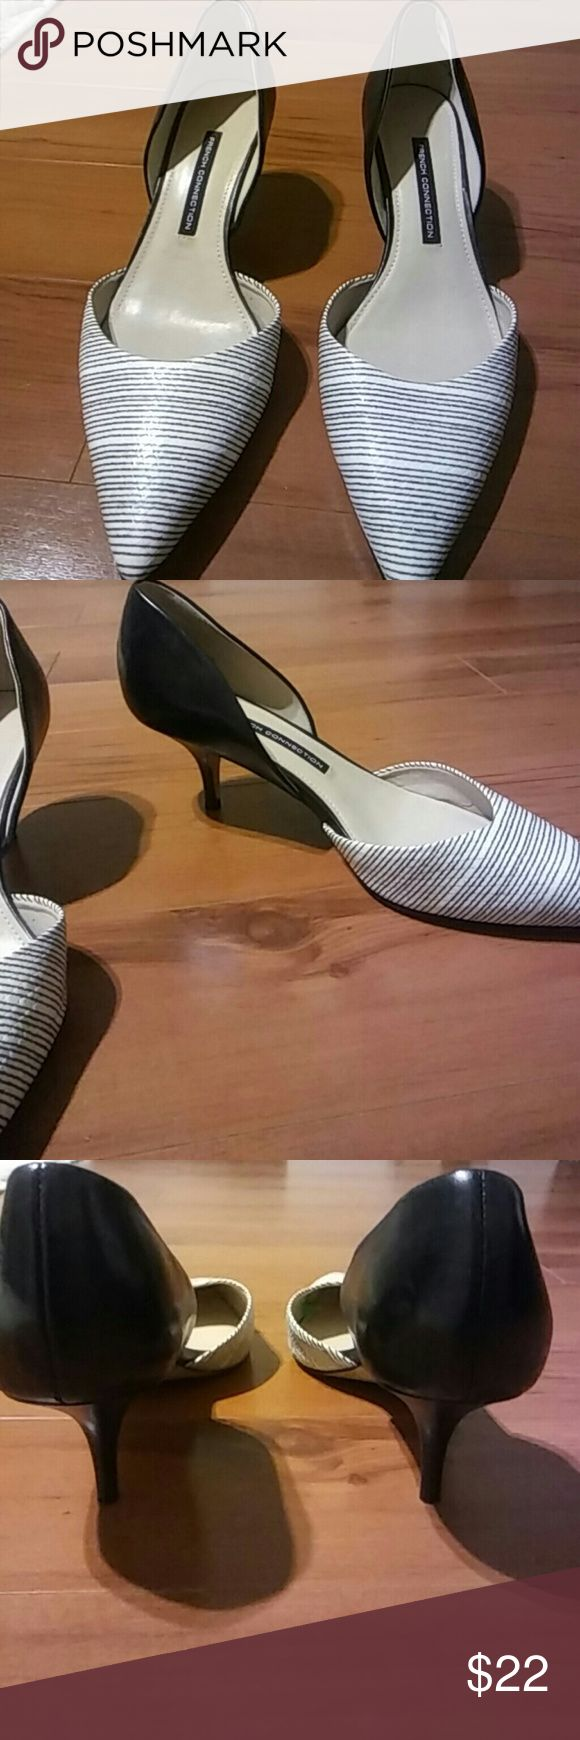 Shoes by French Connection Black and white heels. Very comfortable. Has been worn but is still in good condition. French Connection Shoes Heels